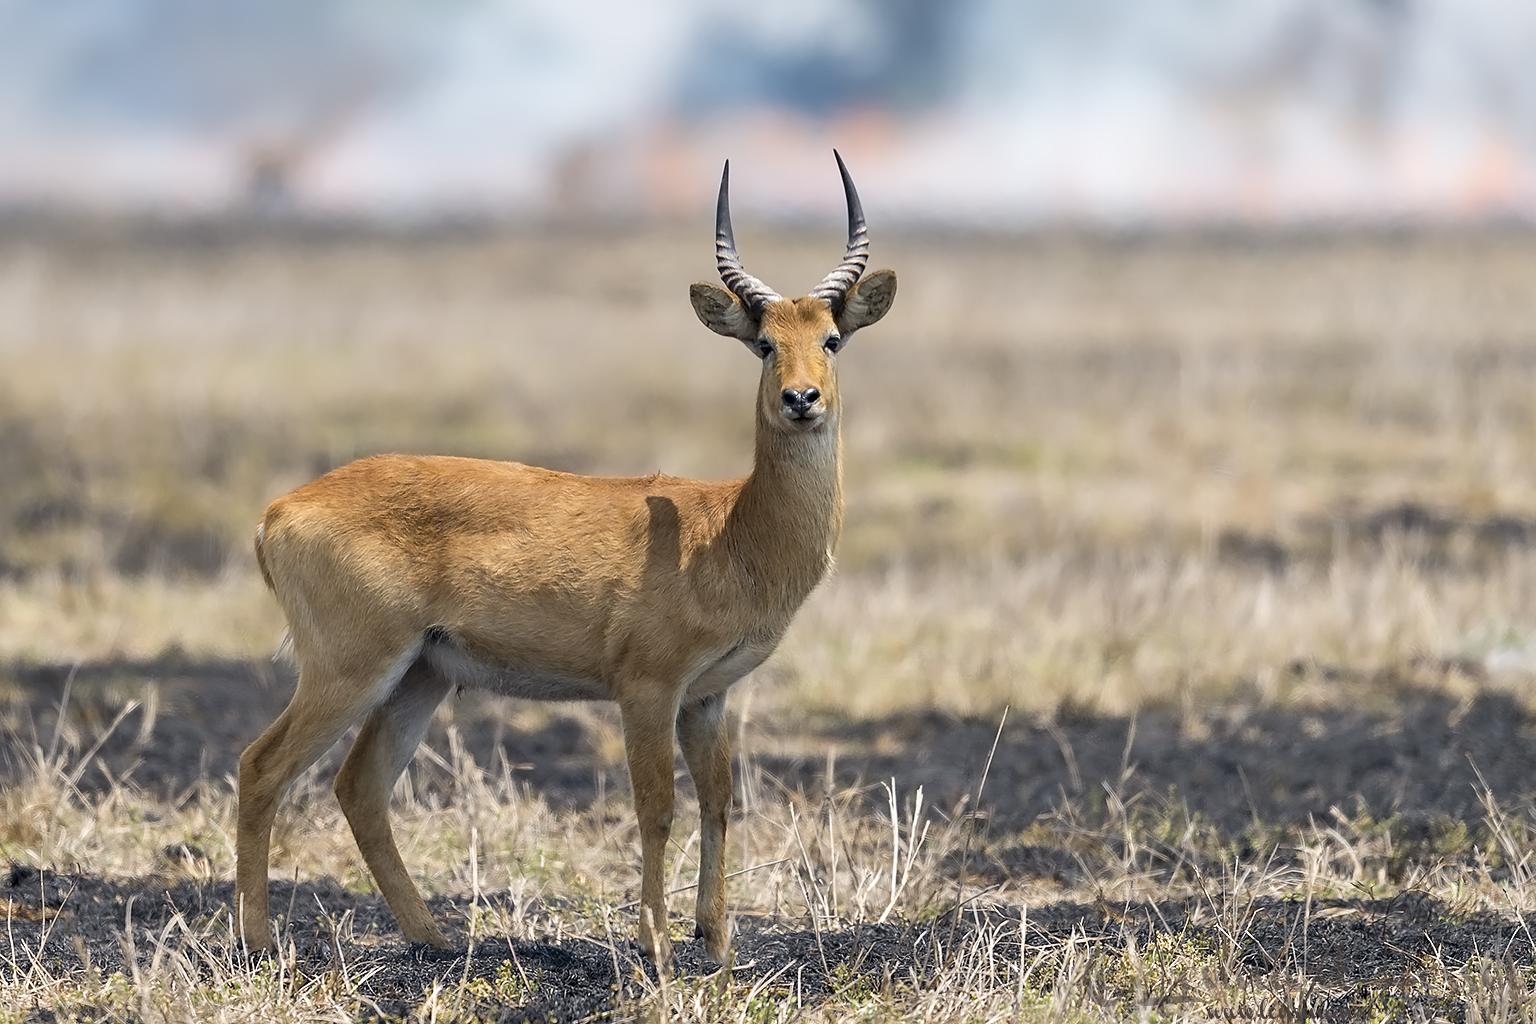 Puku in front of bush fire Kafue National Park